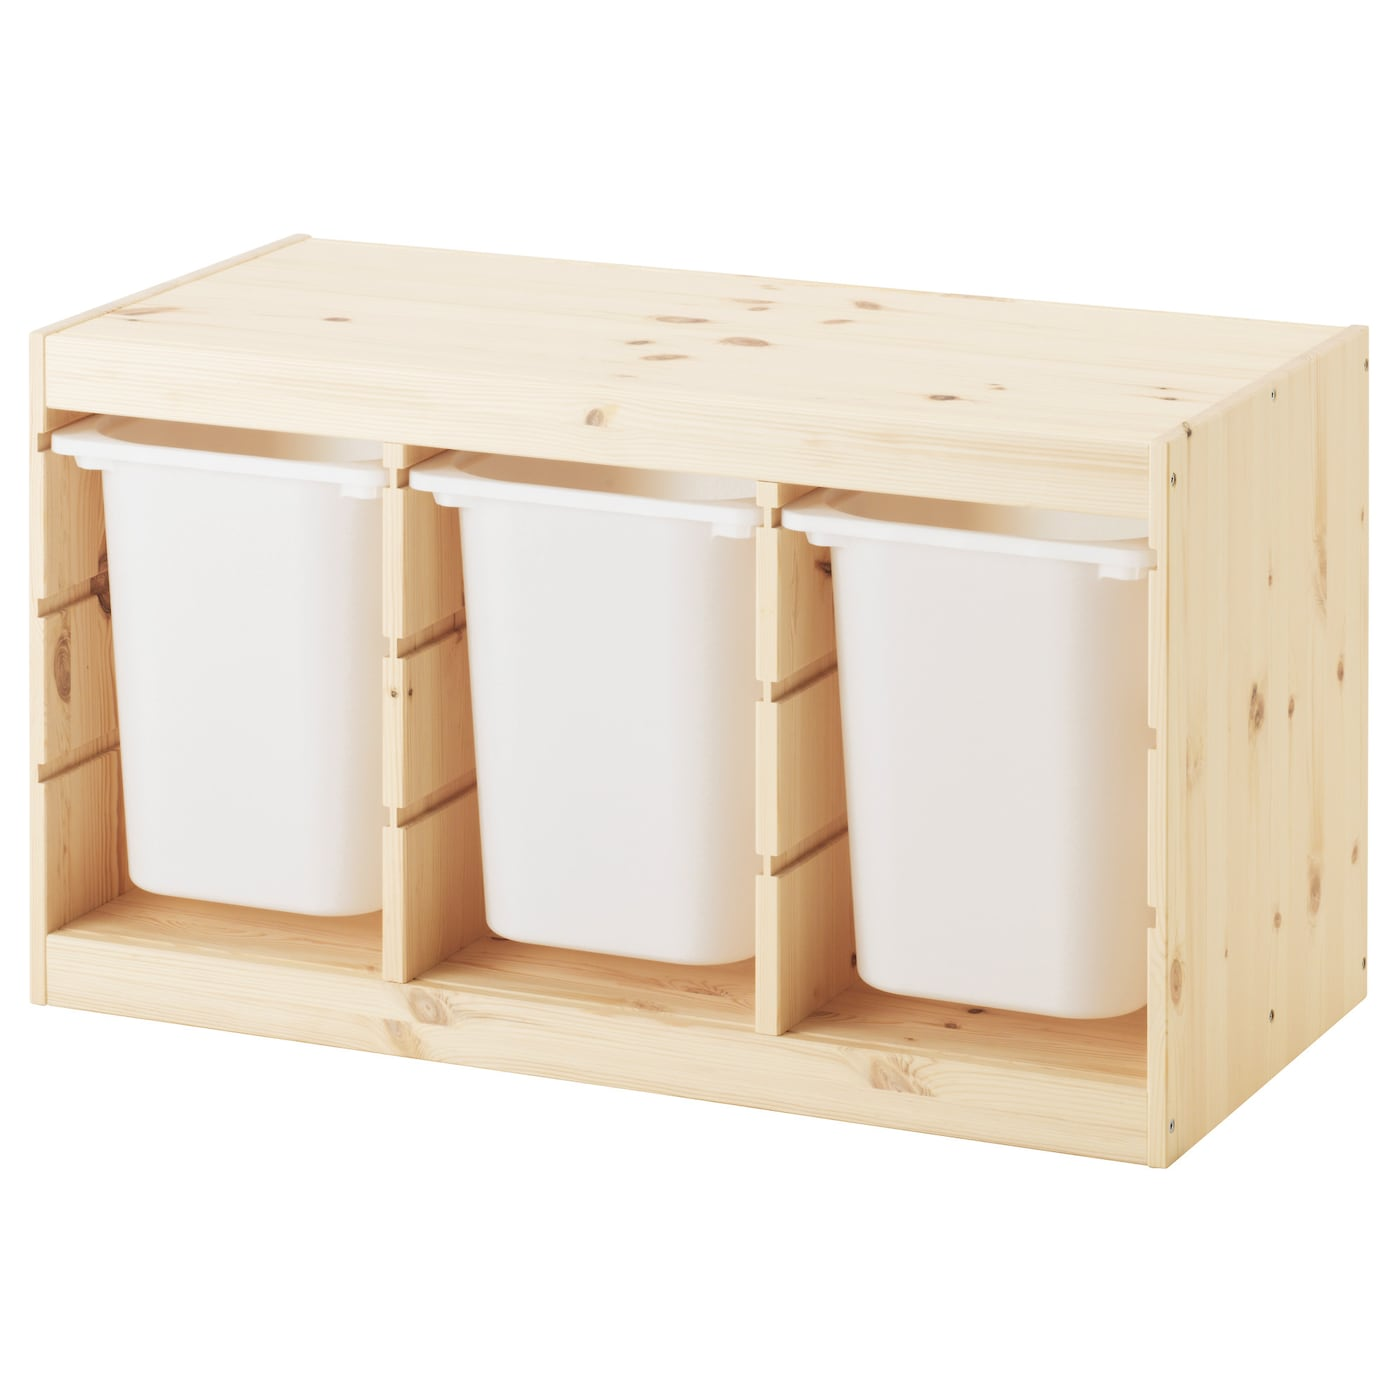 Trofast toy storage ikea for Box bimbi ikea